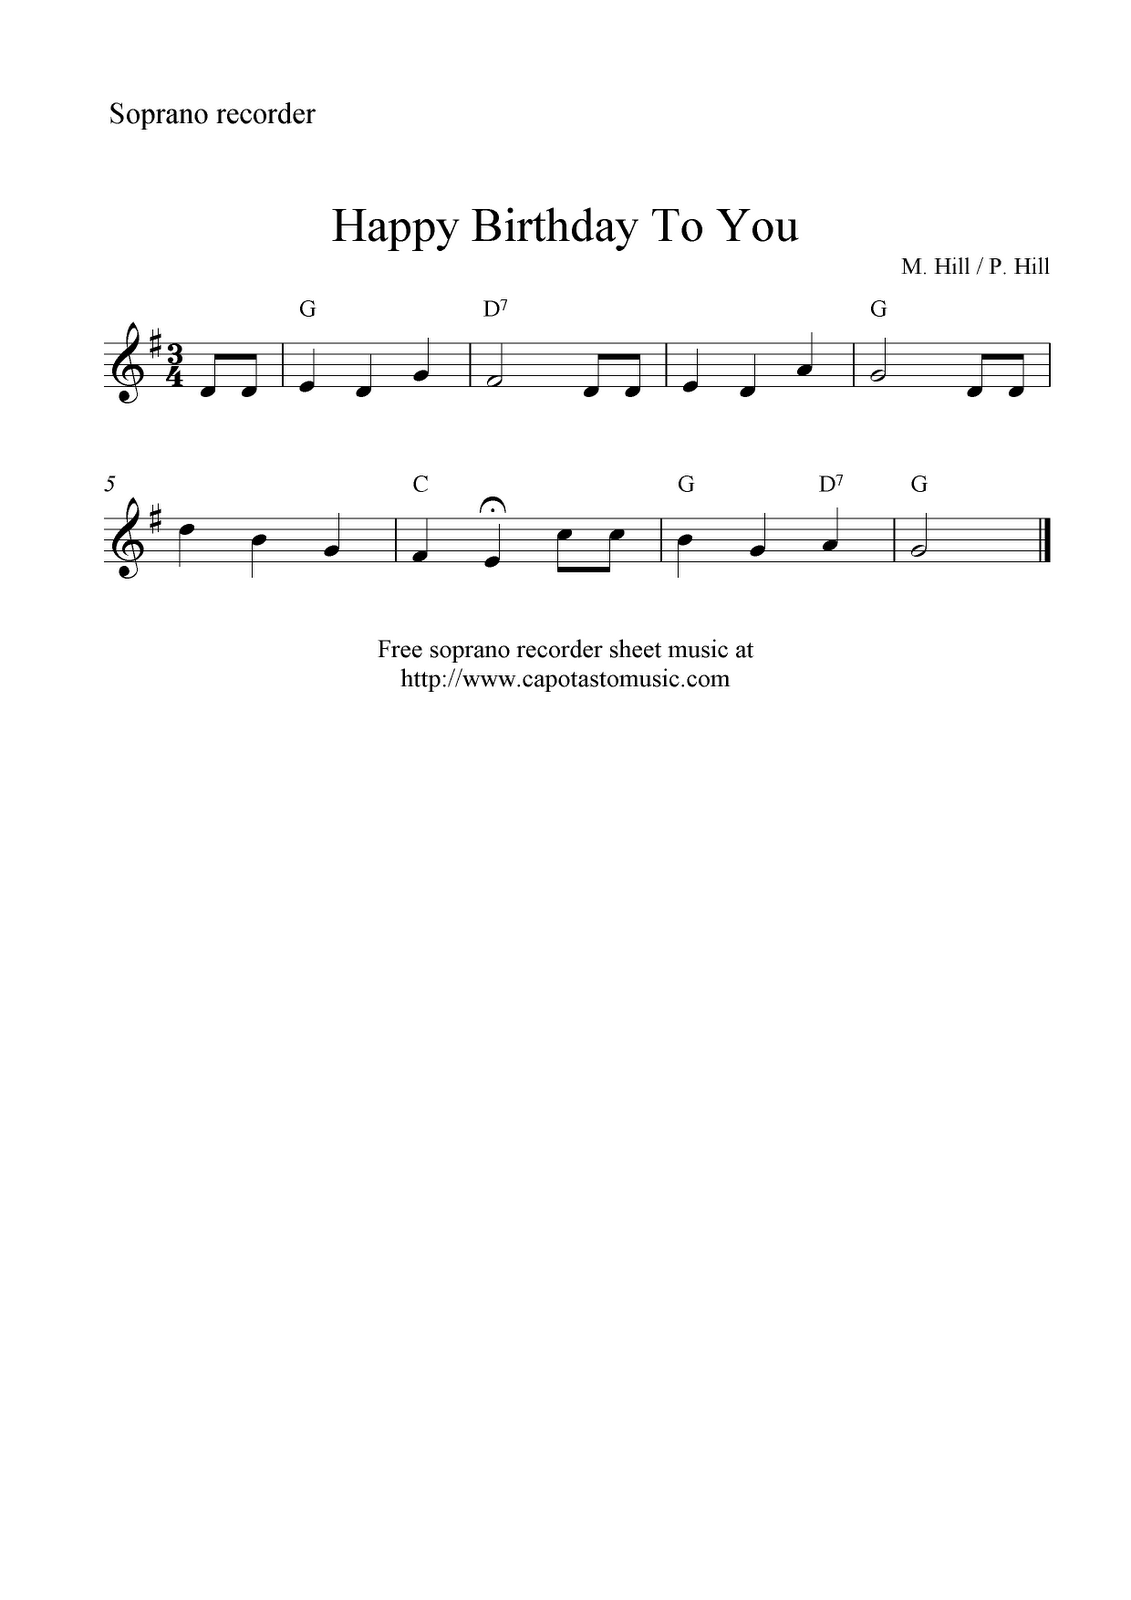 Free Sheet Music Scores Happy Birthday To You Free Soprano Recorder Sheet Music Notes